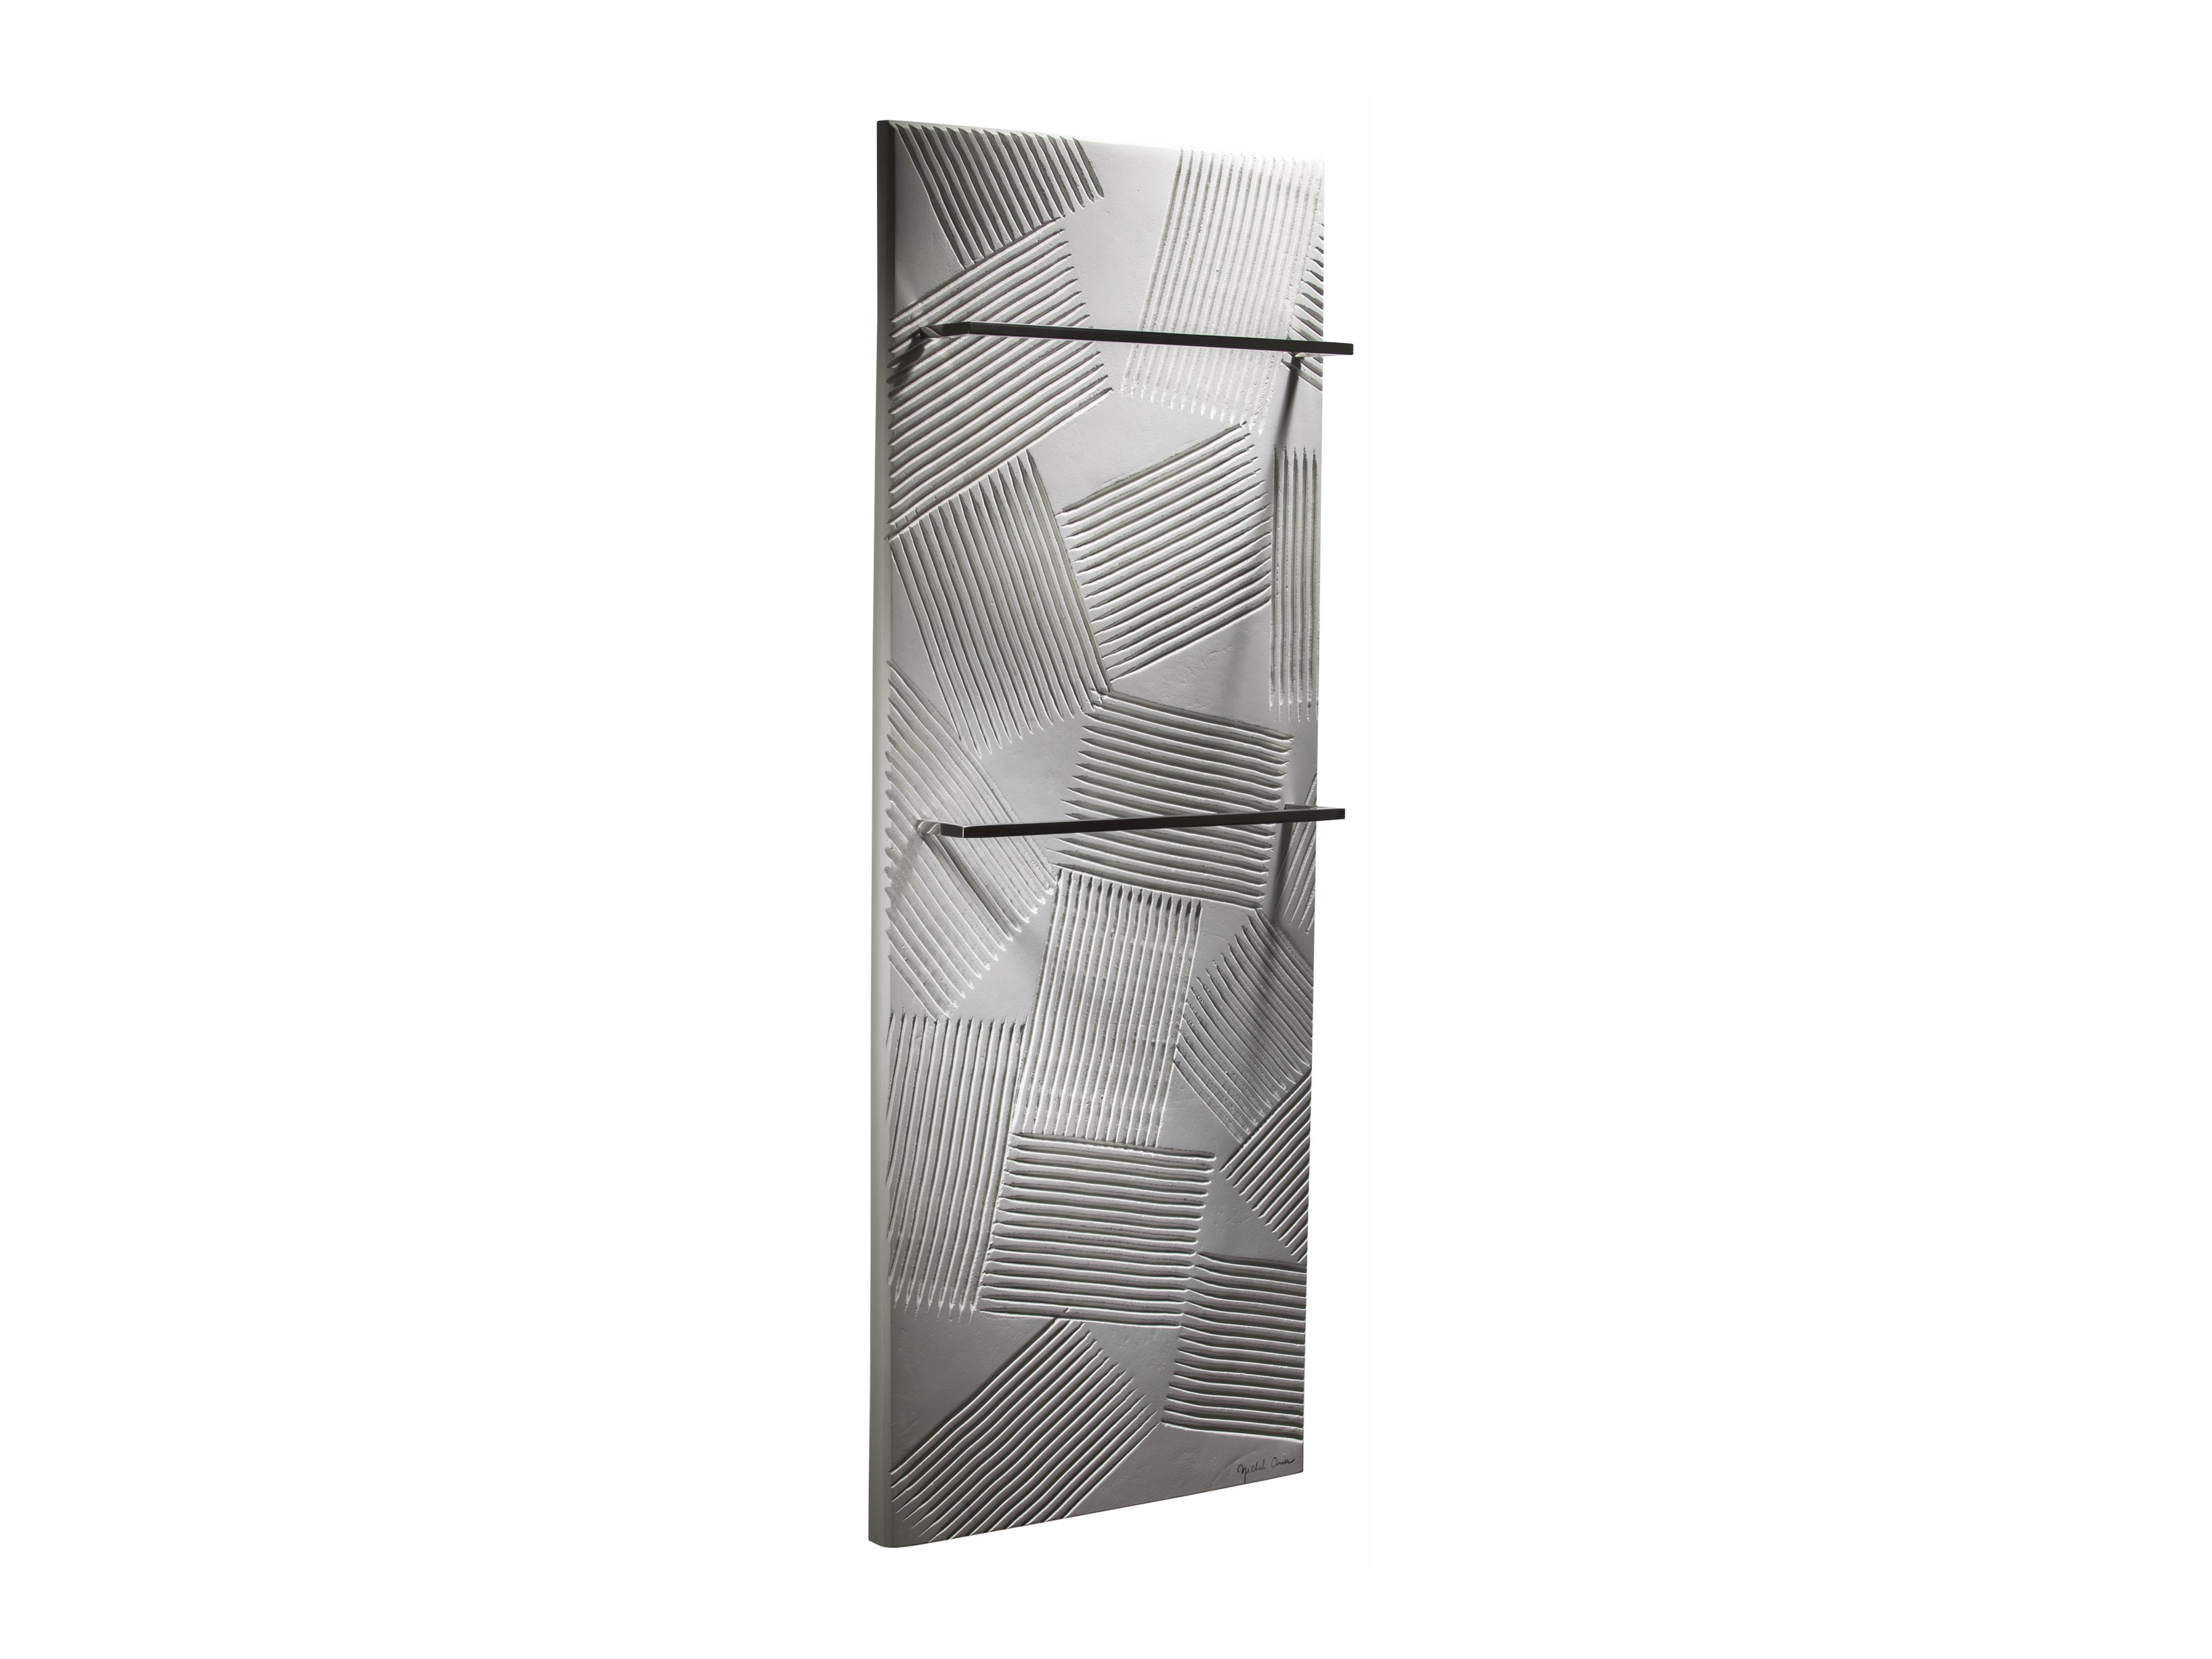 Vertical olycale towel warmer jeu d ombres bain by cinier radiateurs contemp - Radiateurs seche serviettes ...